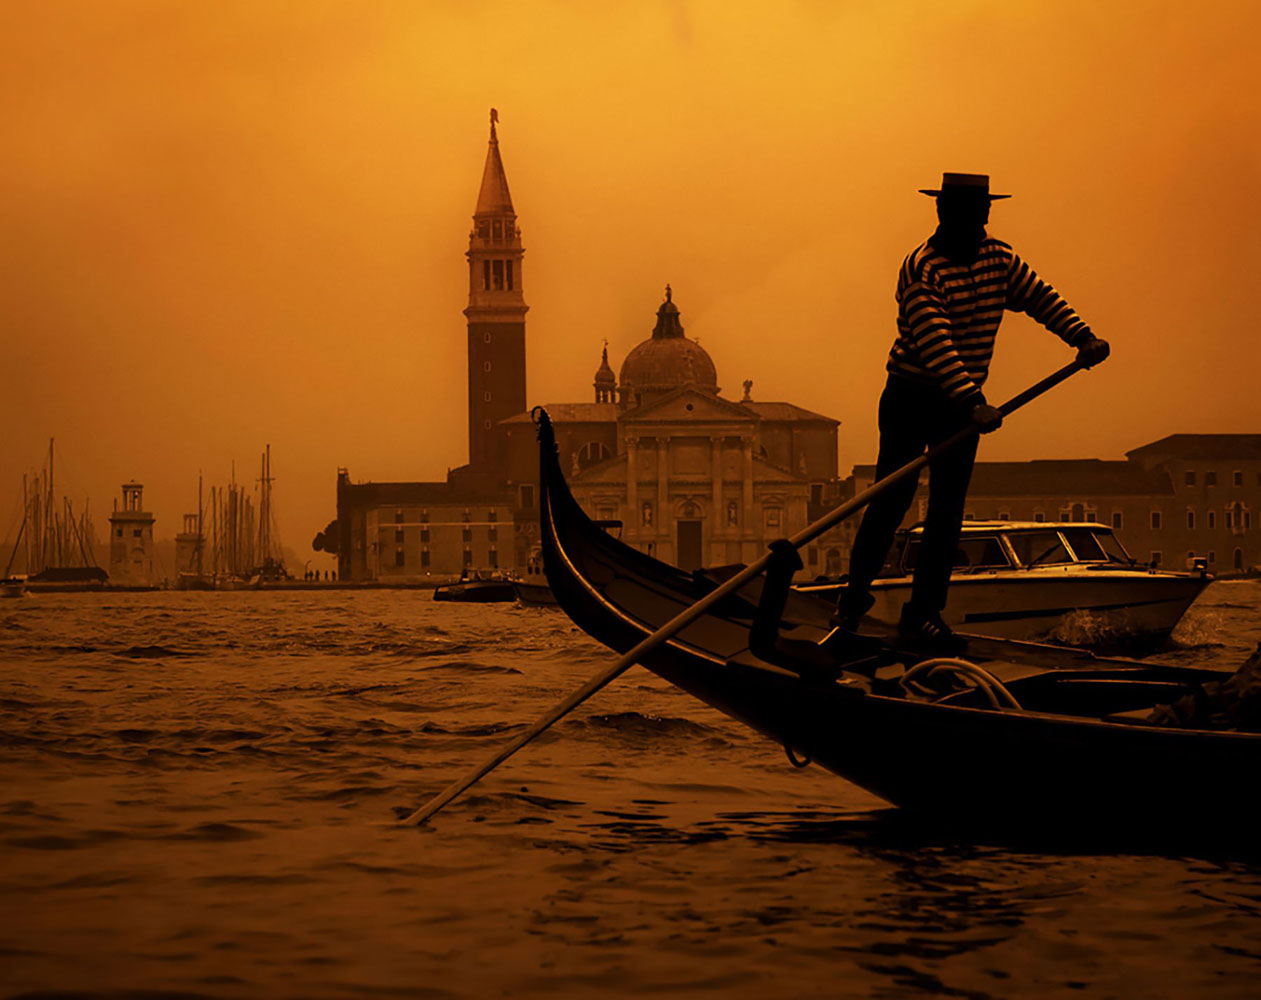 A gondolier guides his gondola through a Venice canal in the orange glow of sunset.